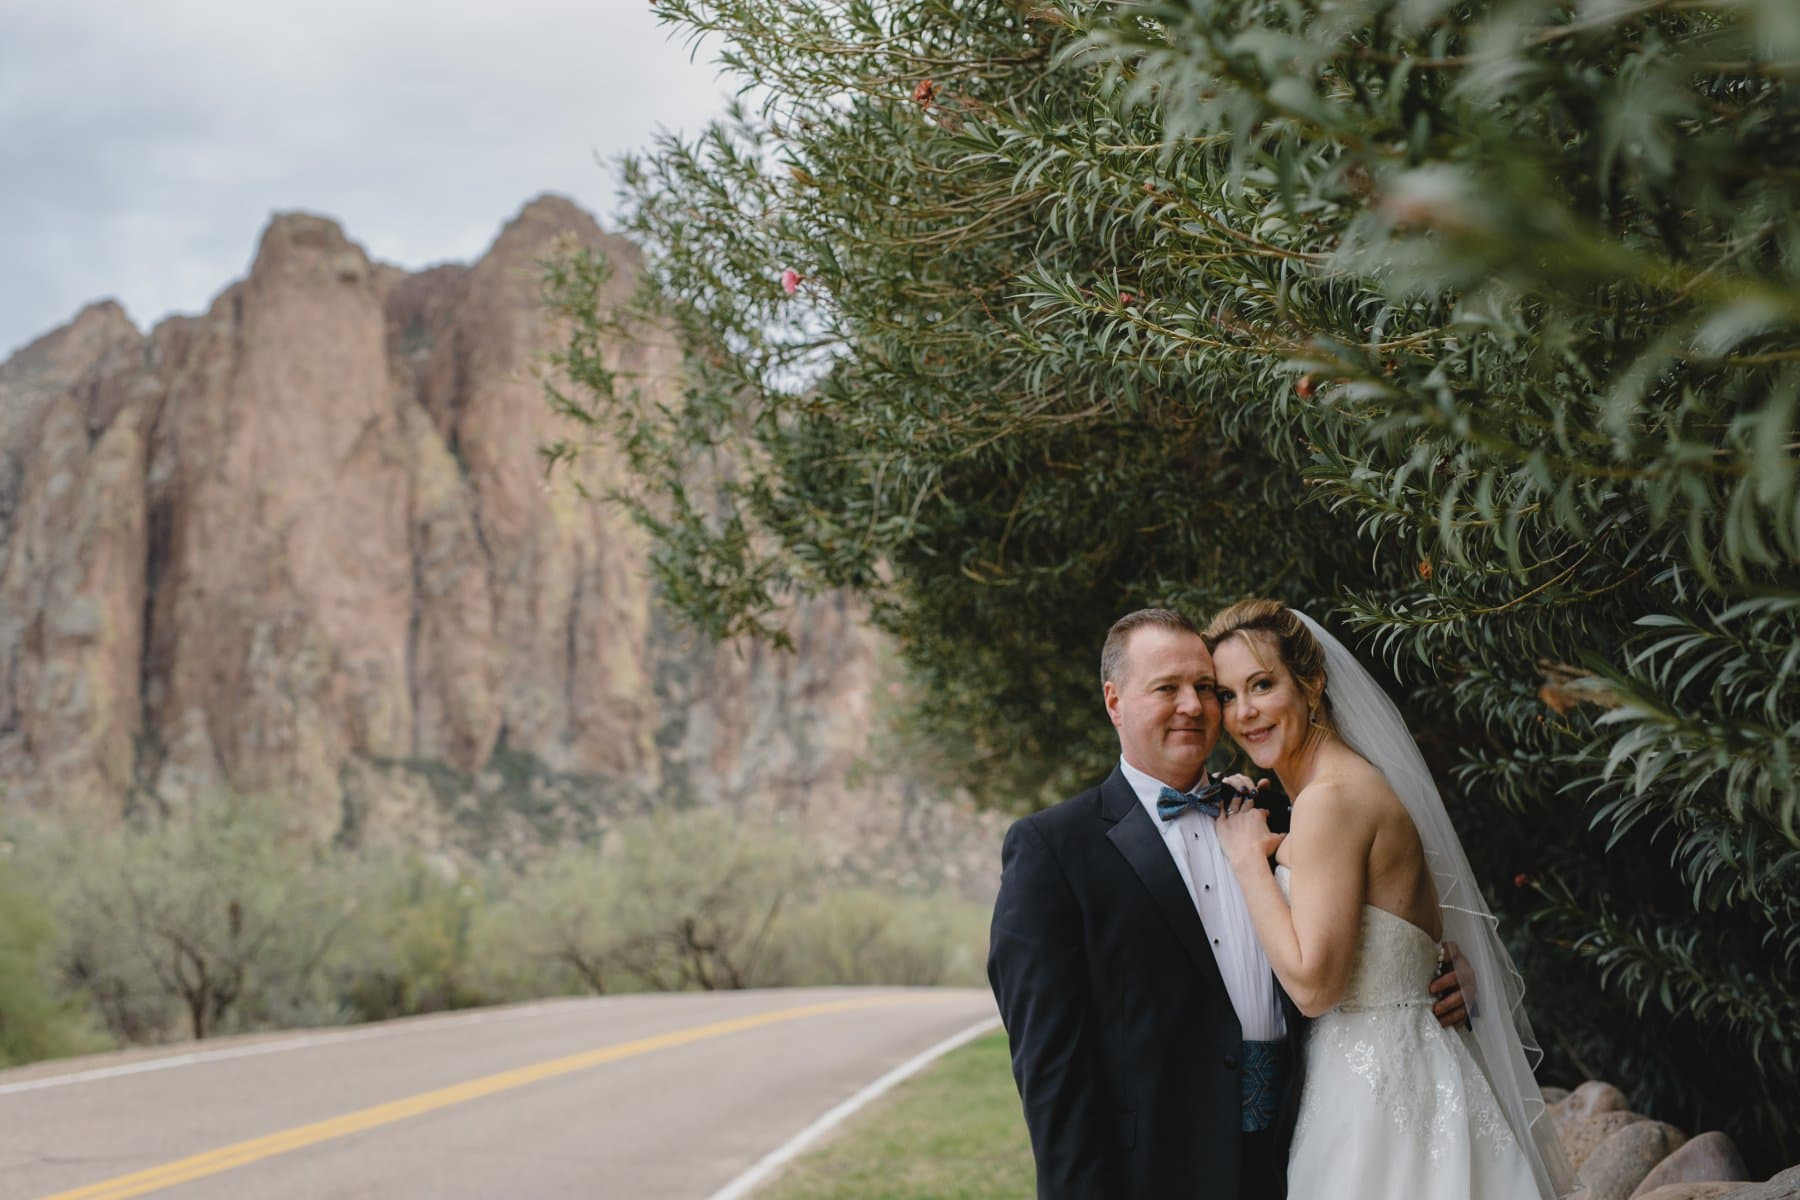 natural outdoor wedding photographer in Phoenix